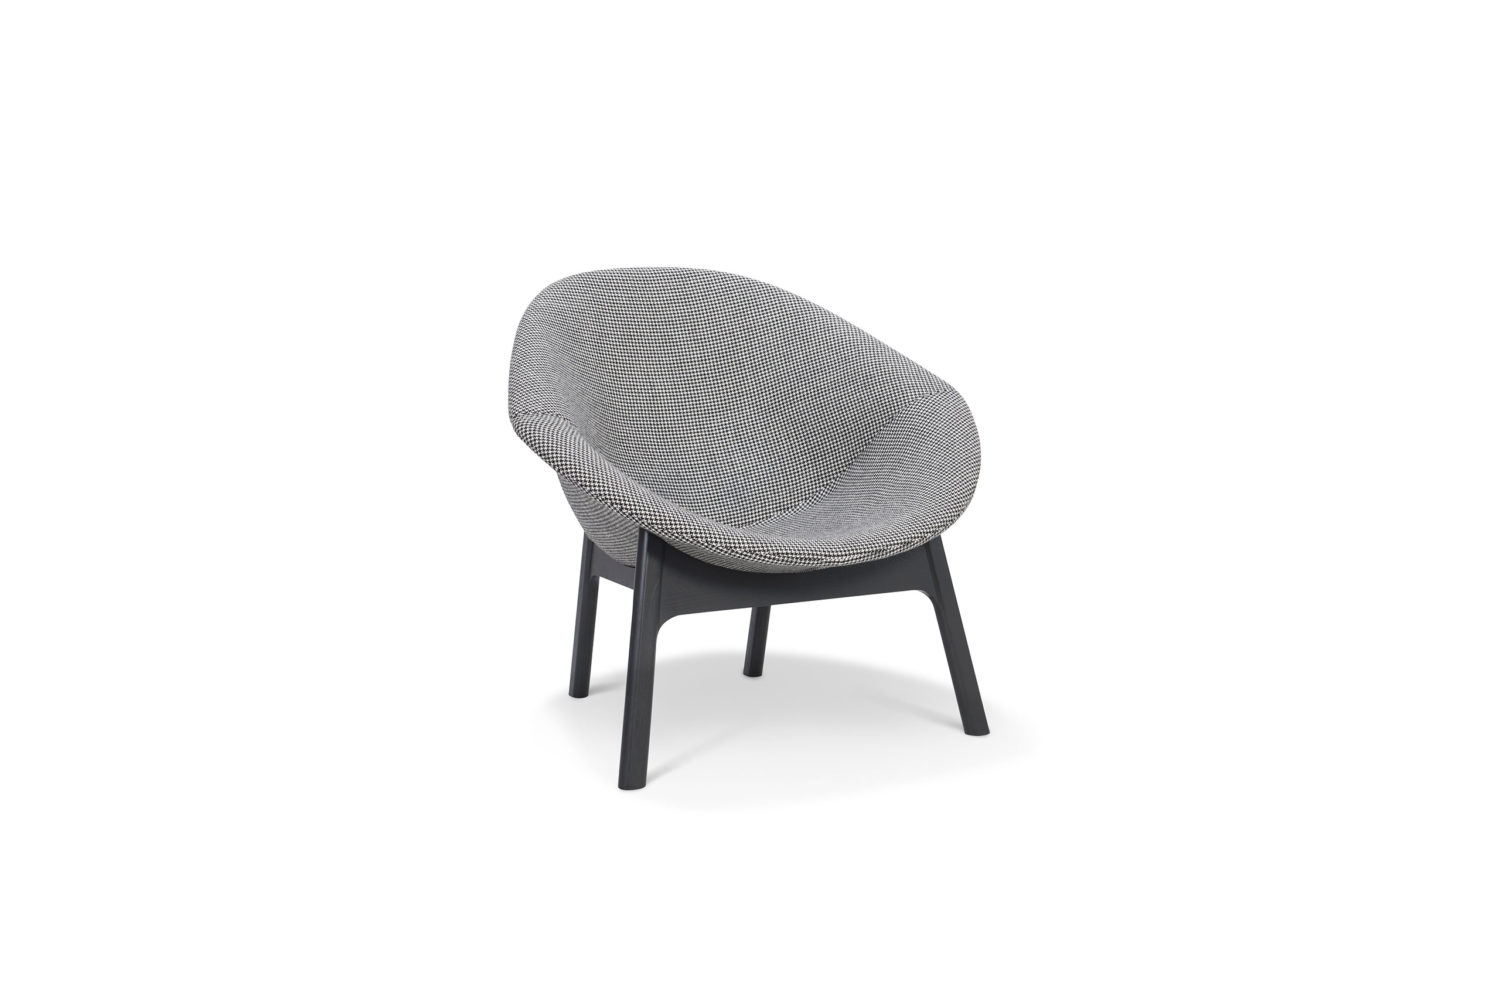 Lily Chair By Michael Sodeau 4